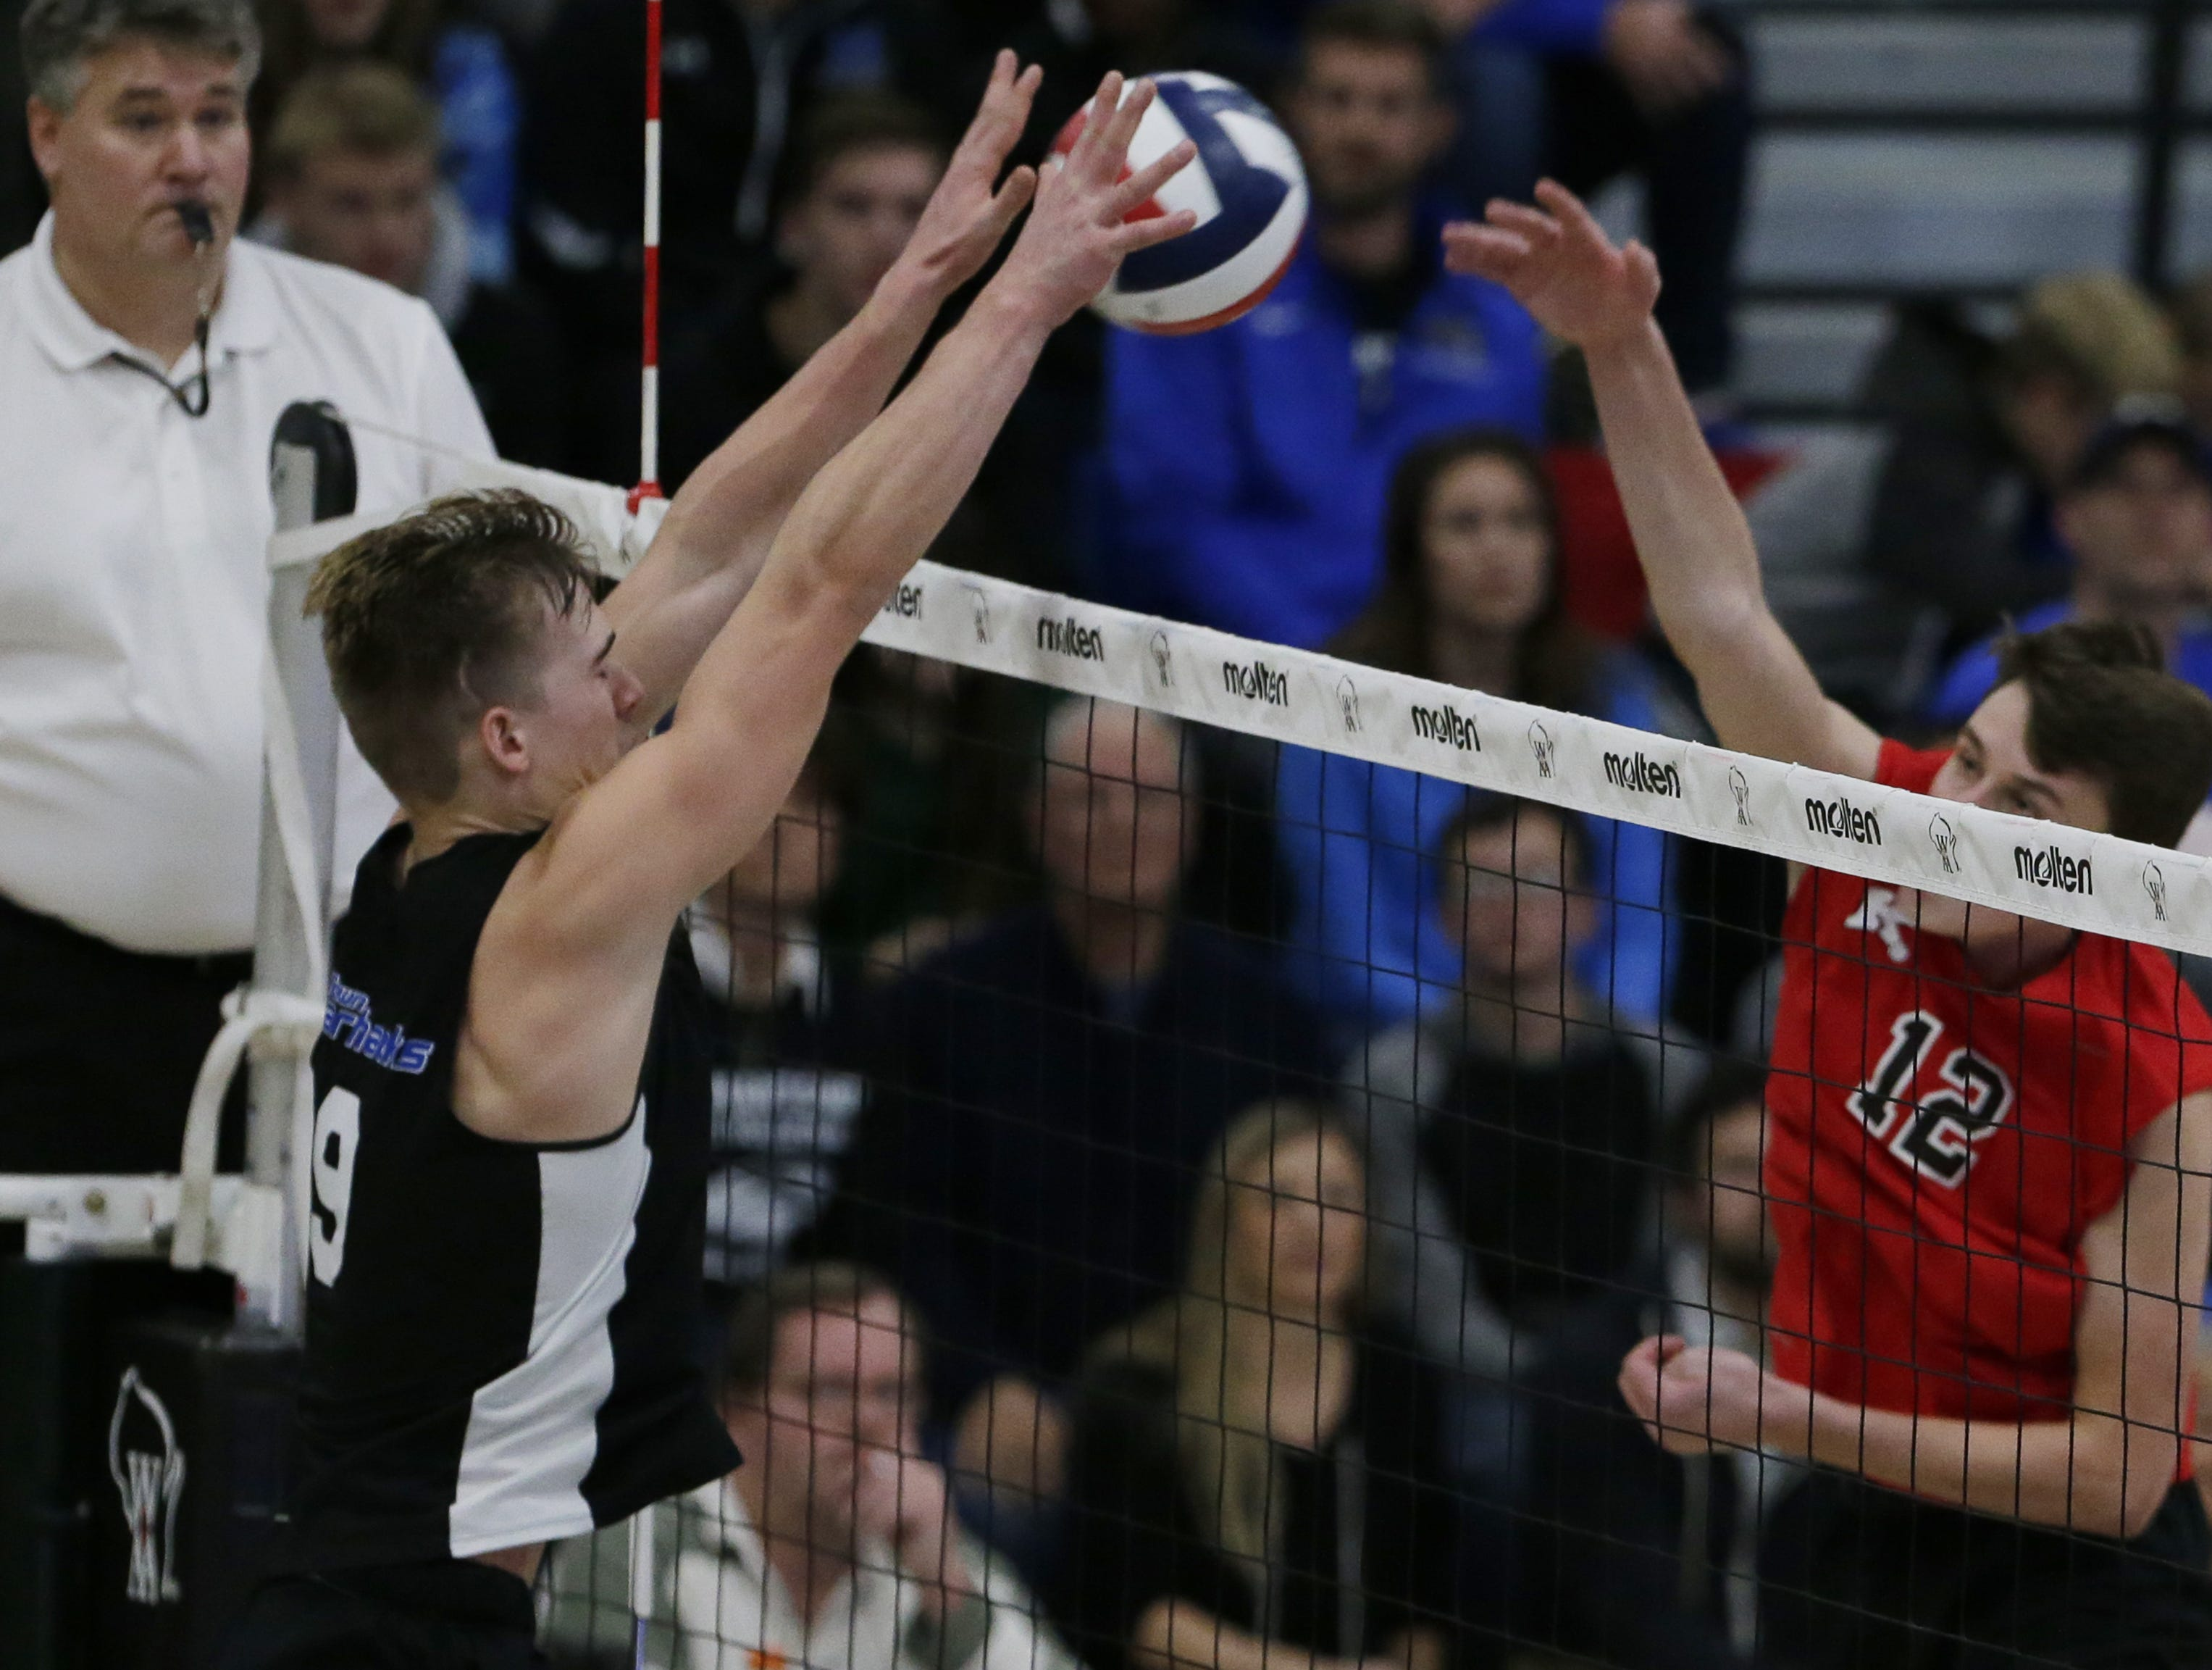 Kimberly's Parker Hietpas spikes the ball as Germantown's Bryce Behrendt blocks the hit.  Kimberly Papermakers played Germantown Warhawks in Division 1 WIAA State Boys Volleyball Championship, Saturday, November 10, 2018 at Wisconsin Lutheran College in Milwaukee, Wis. Joe Sienkiewicz/USA Today NETWORK-Wisconsin